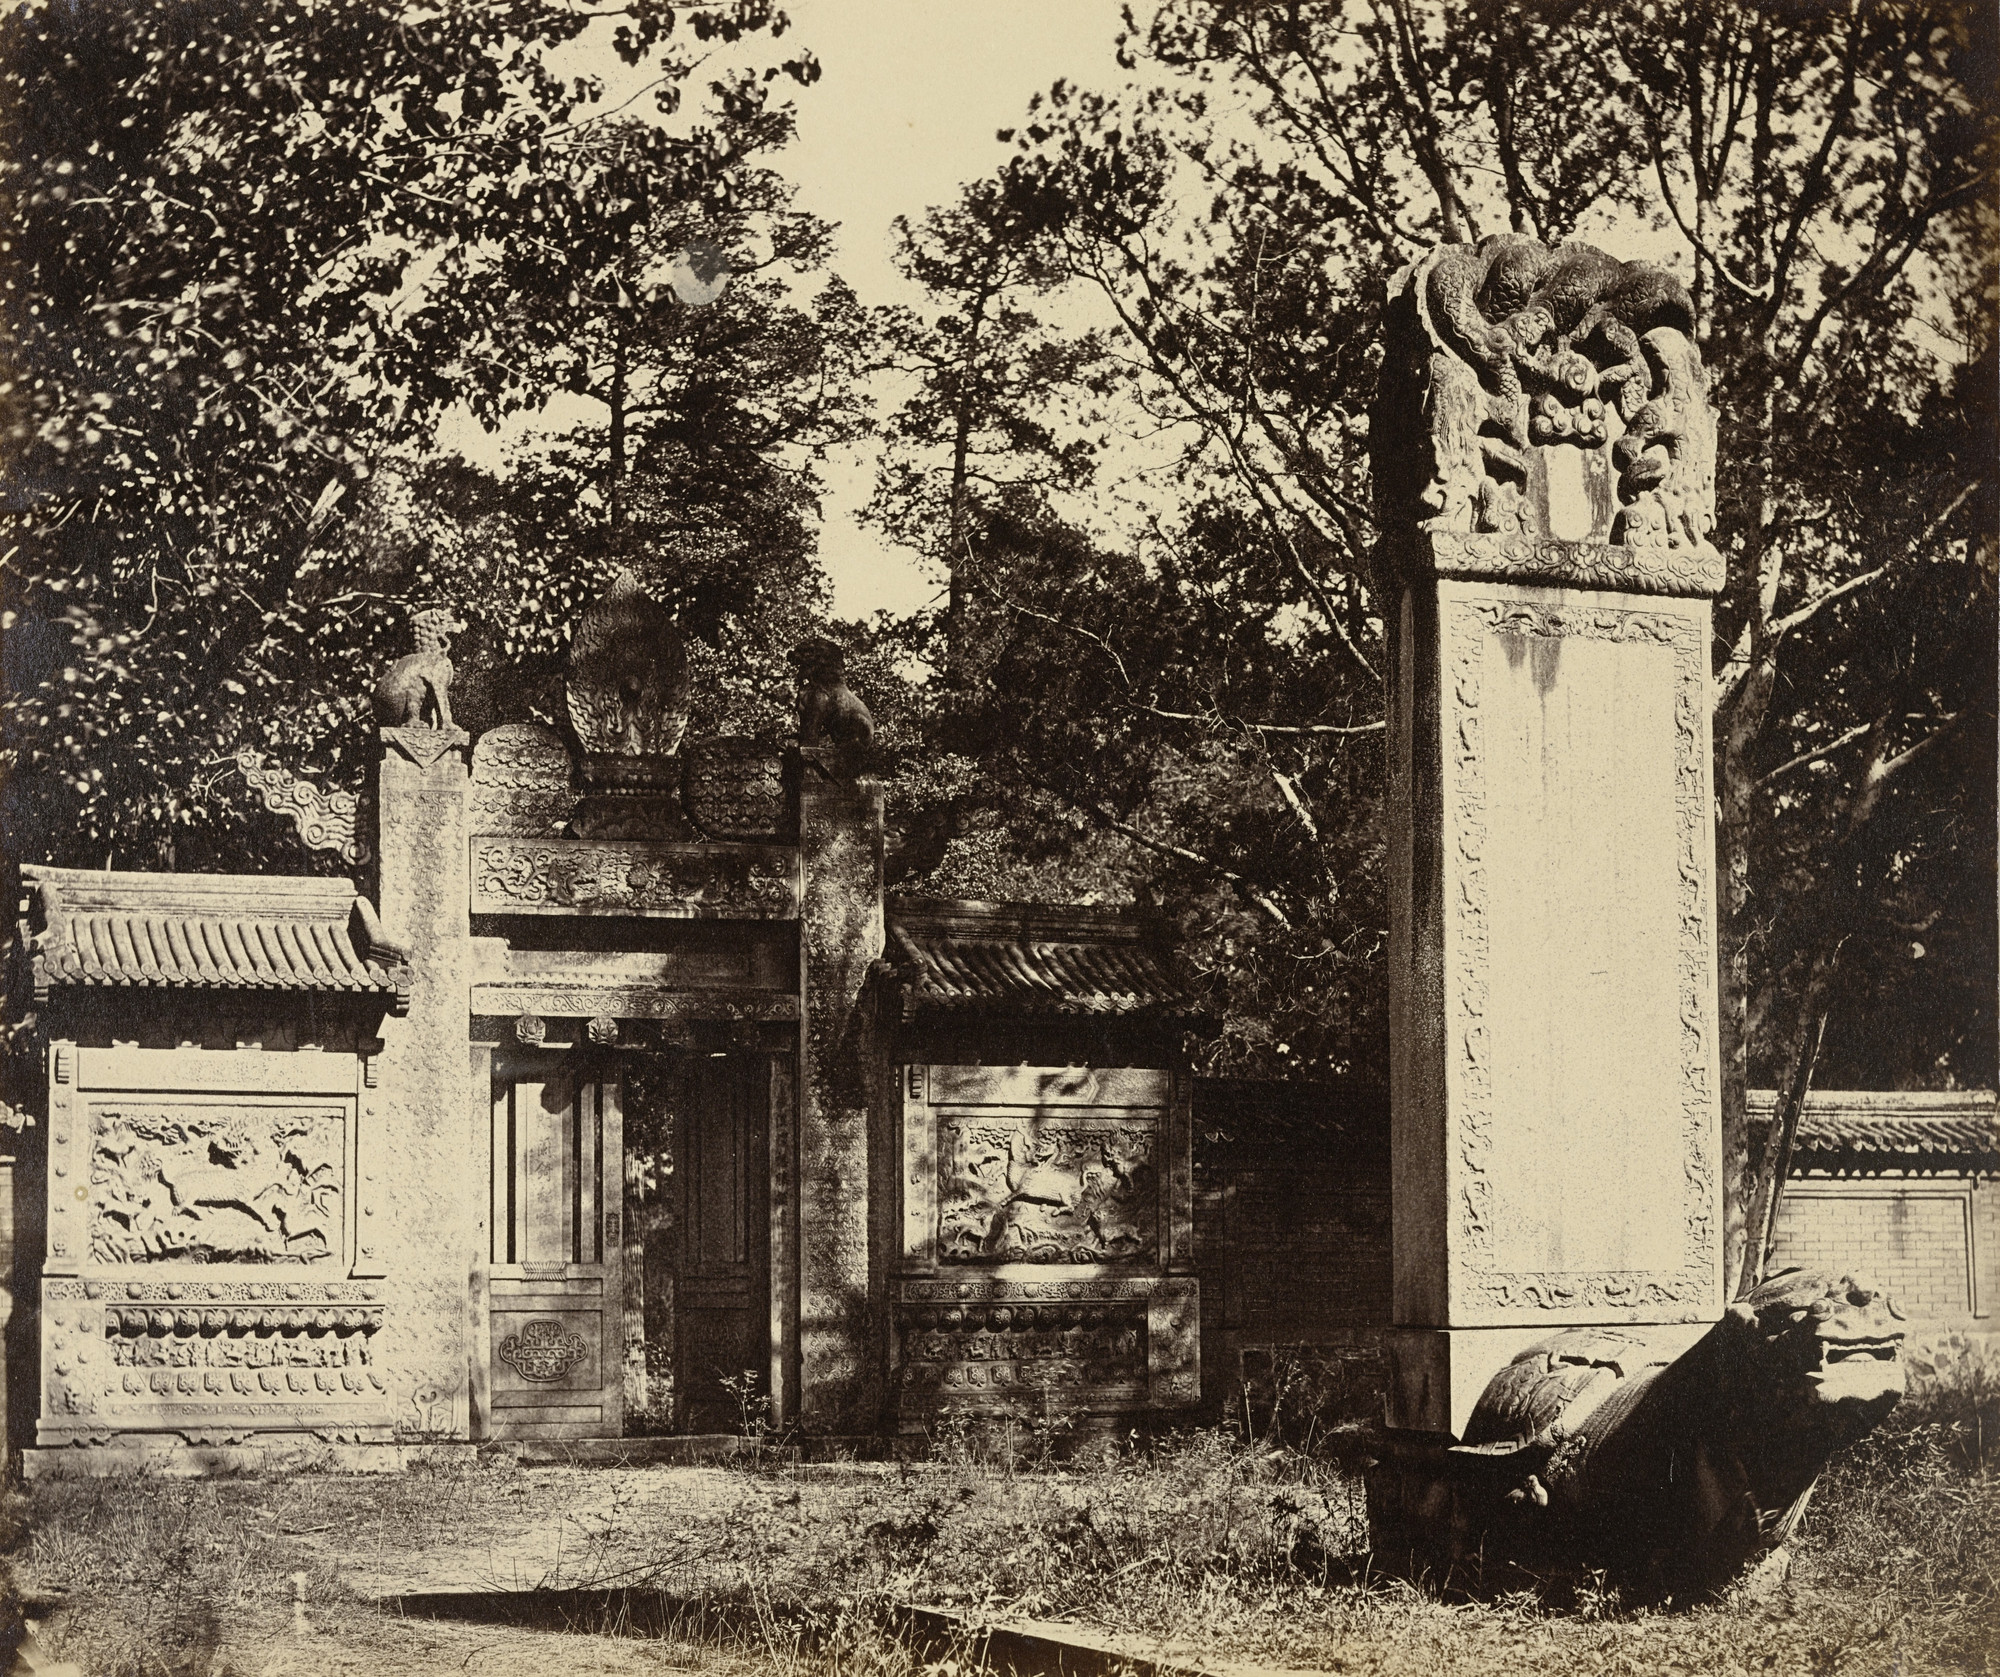 Felice Beato. Carved Tomb at the Depot Near Pekin, The Place Where the Guns and Ammunition was (sic) Left When the Army Marched to Pekin. October 1860